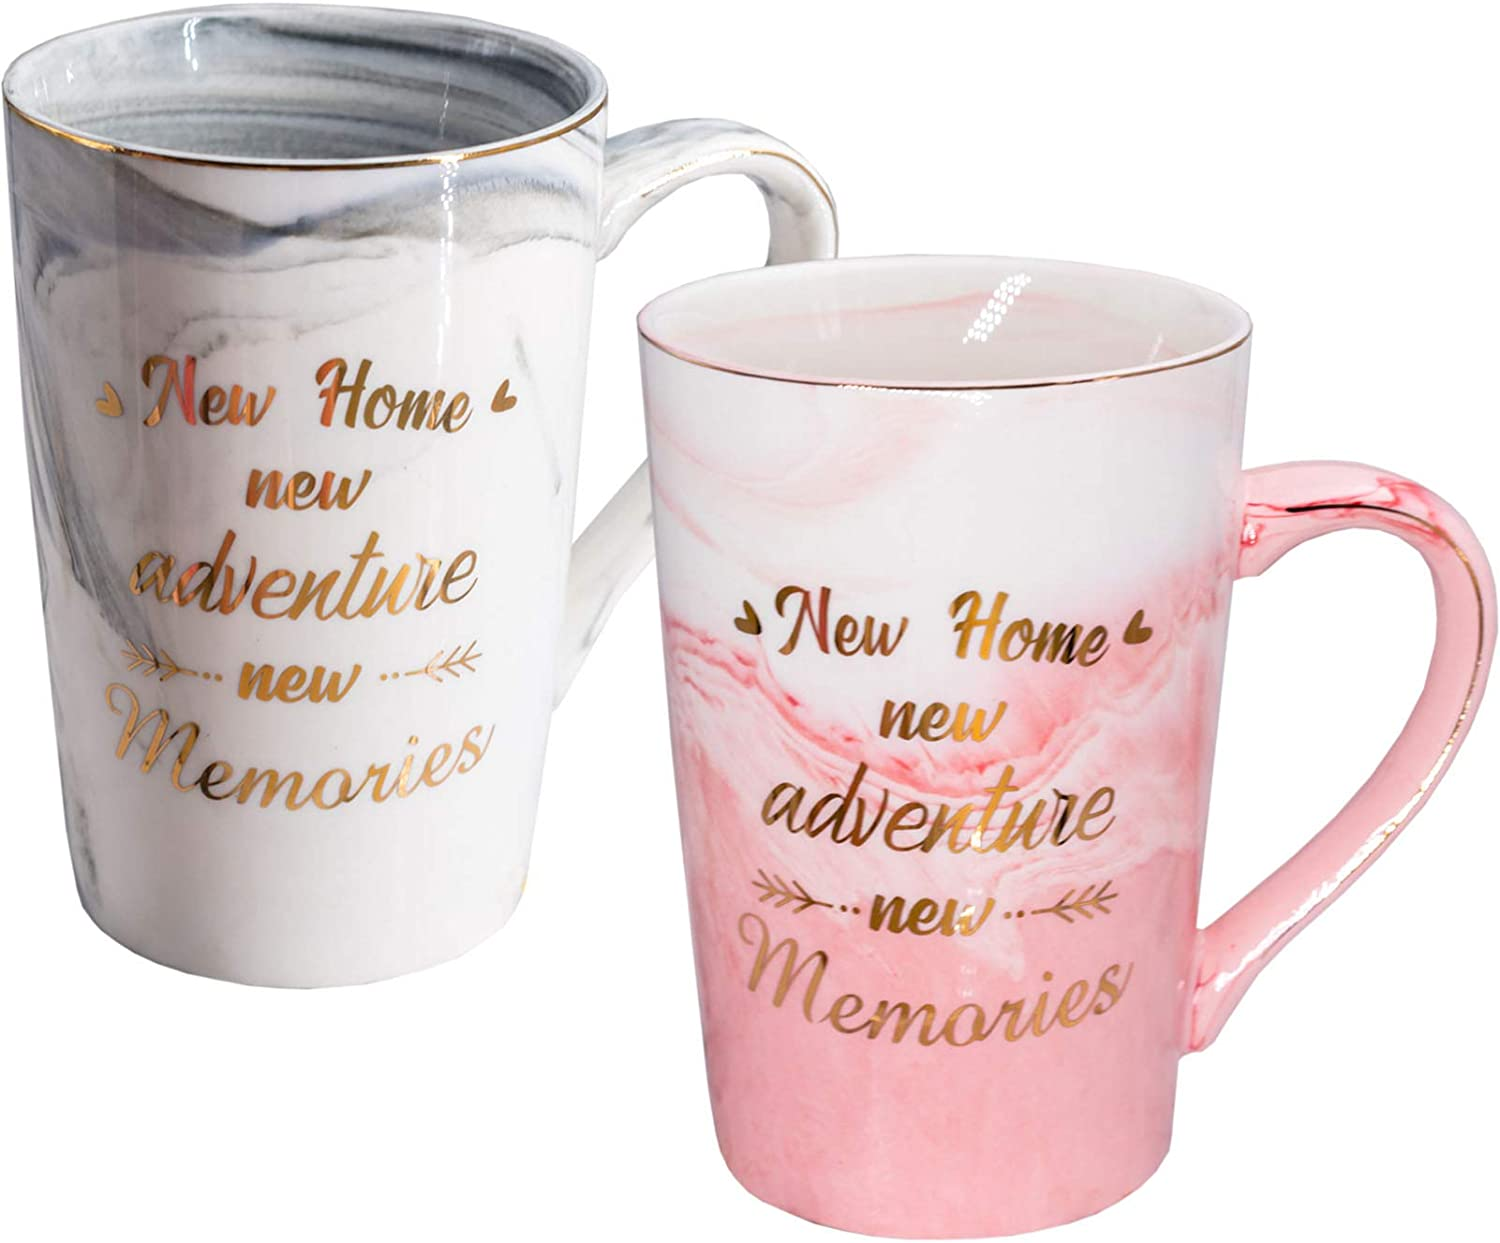 Mugpie Housewarming Gifts For New Home Owner - New House Gift Couples Coffee Mug Present for Women Men Friends Mom Dad Daughter Son Coworkers -Sweet Wedding Christmas Gifts for New Home New Adventure